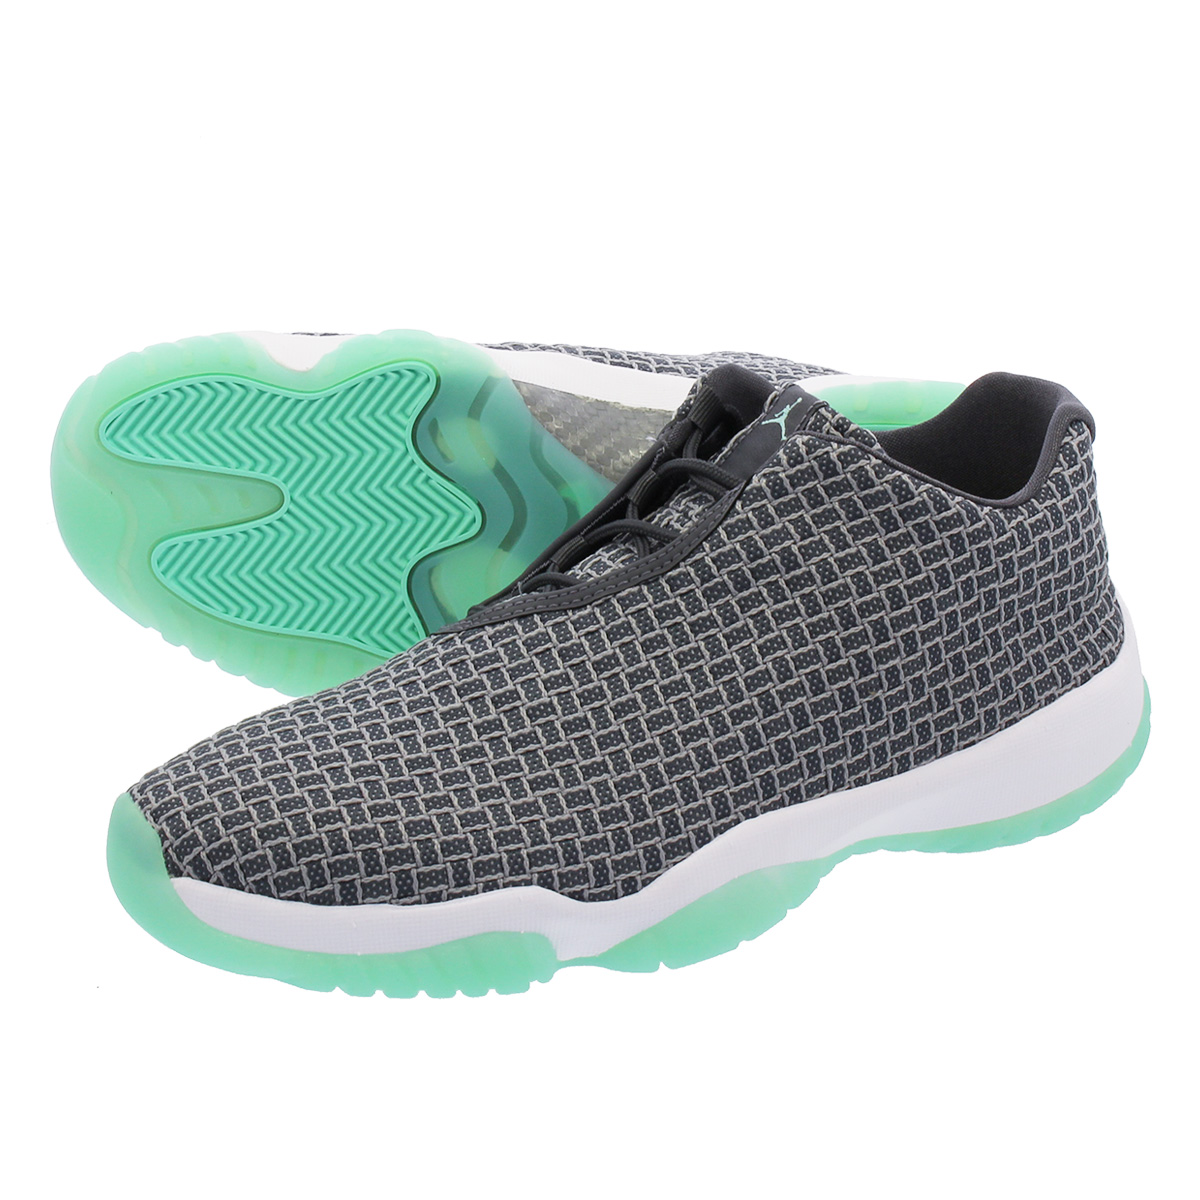 sale retailer 68e19 44273 NIKE AIR JORDAN FUTURE LOW Nike Air Jordan future low WOLF GREY EMERALD  RISE WHITE 718,948-006